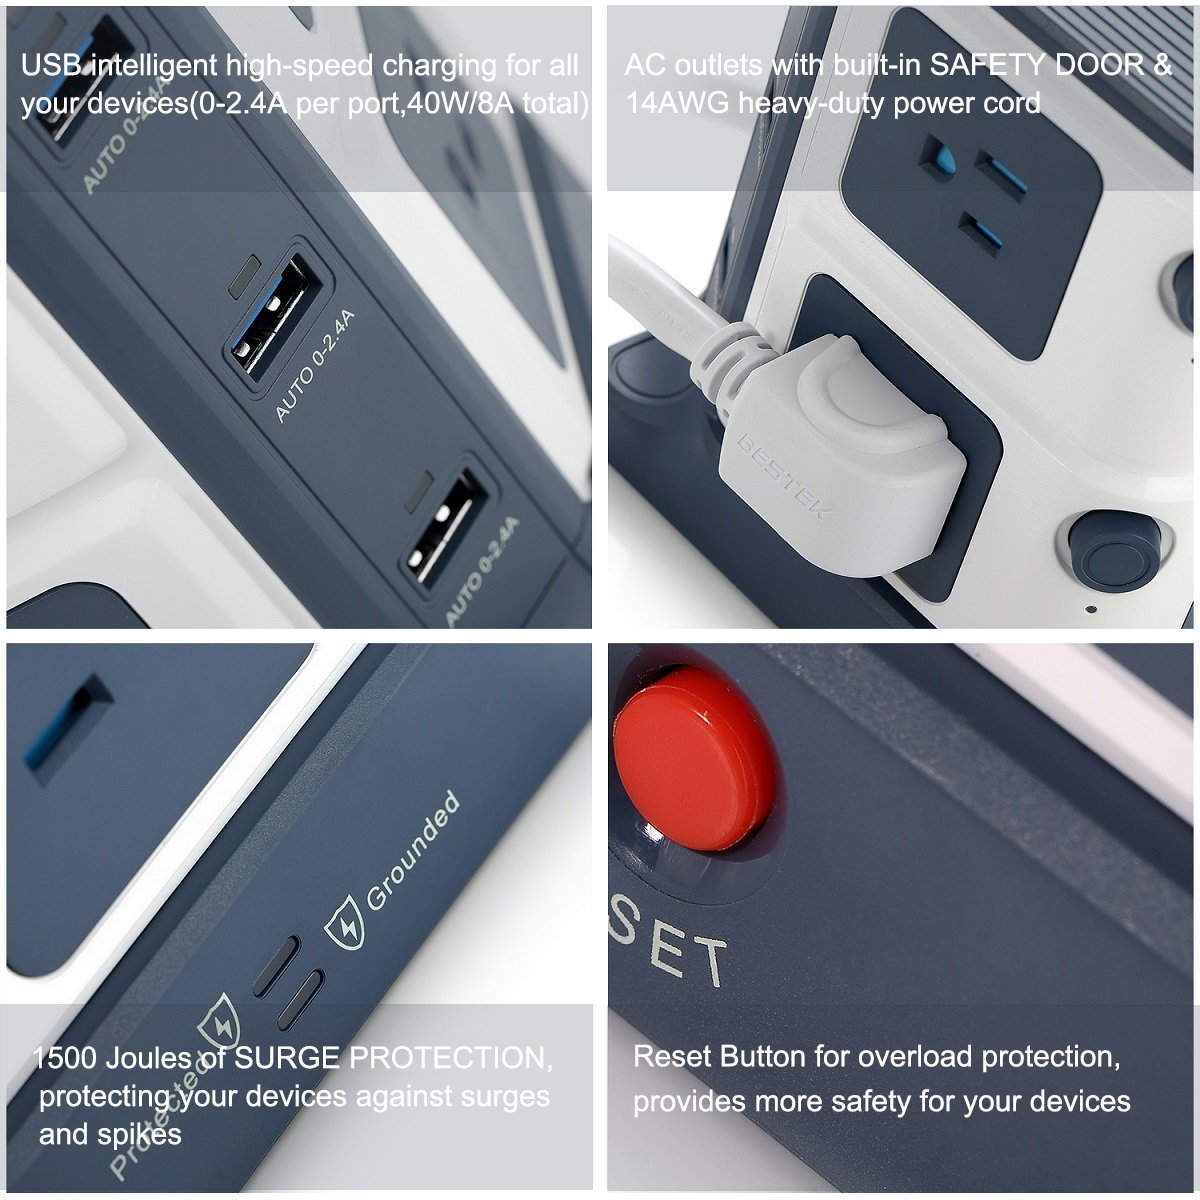 BESTEK Power Outlet Image 3